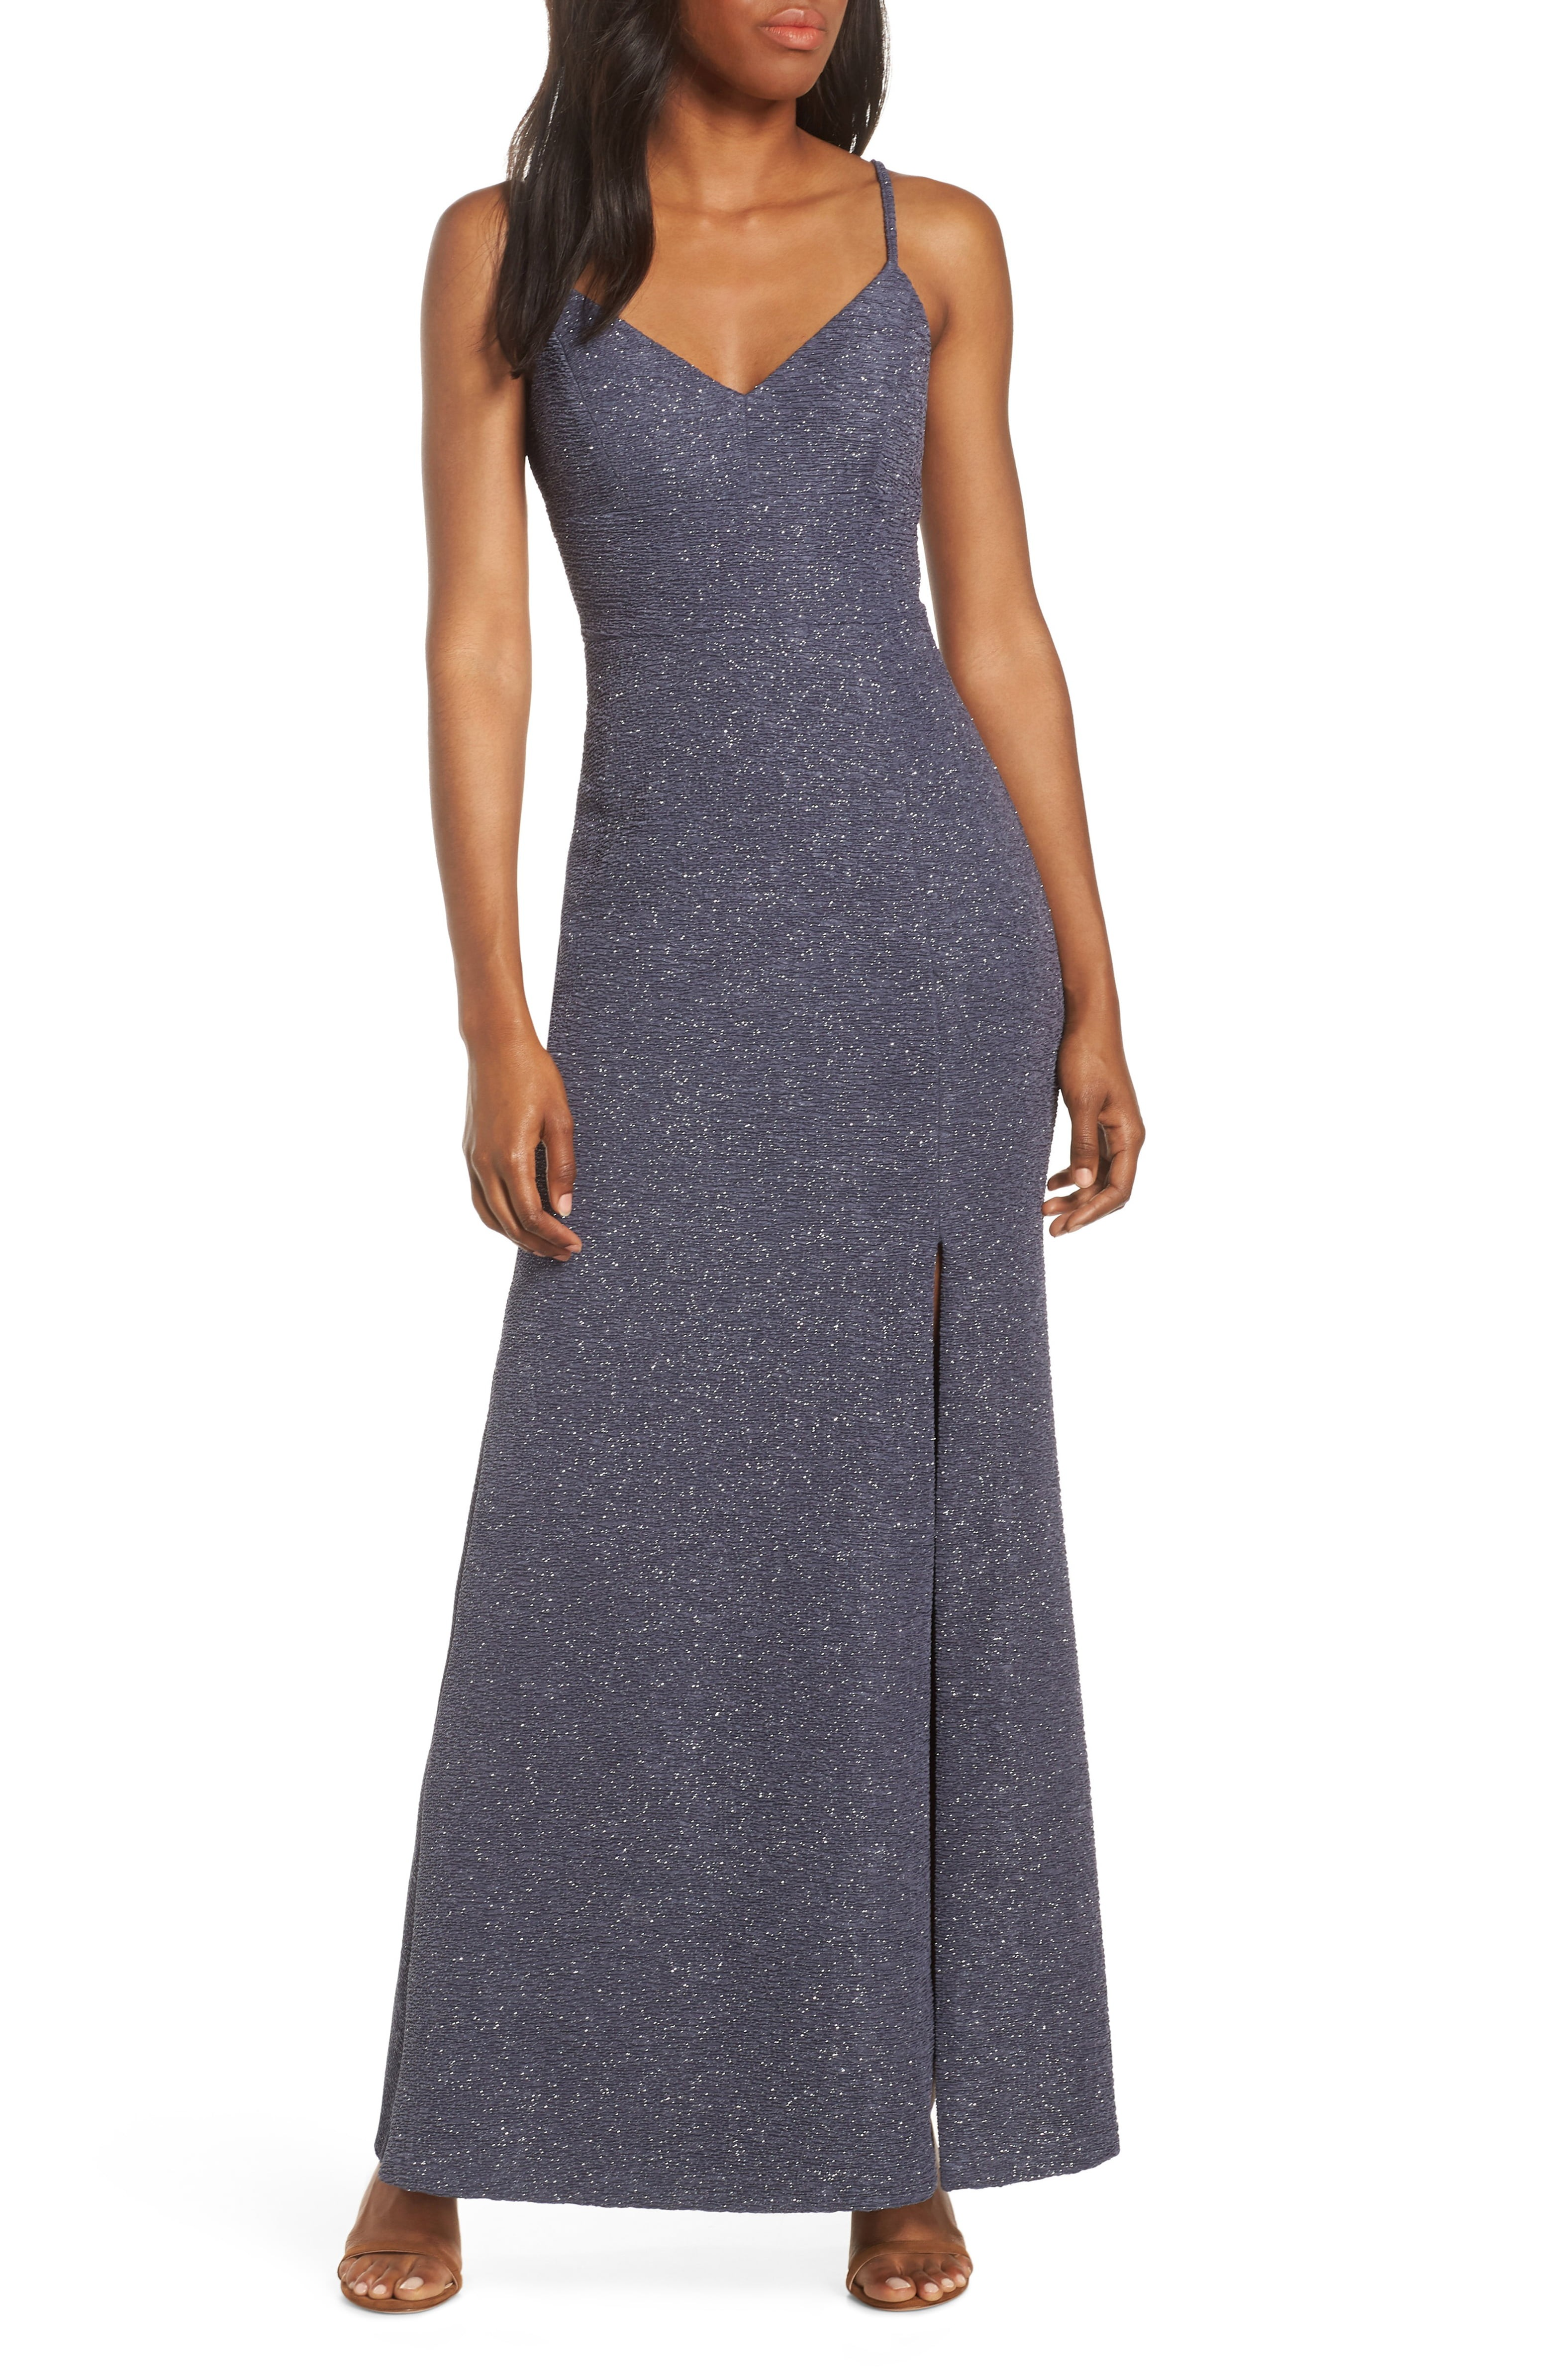 fc942ad8b4c Size Inclusive Wedding Guest Dresses — Caralyn Mirand